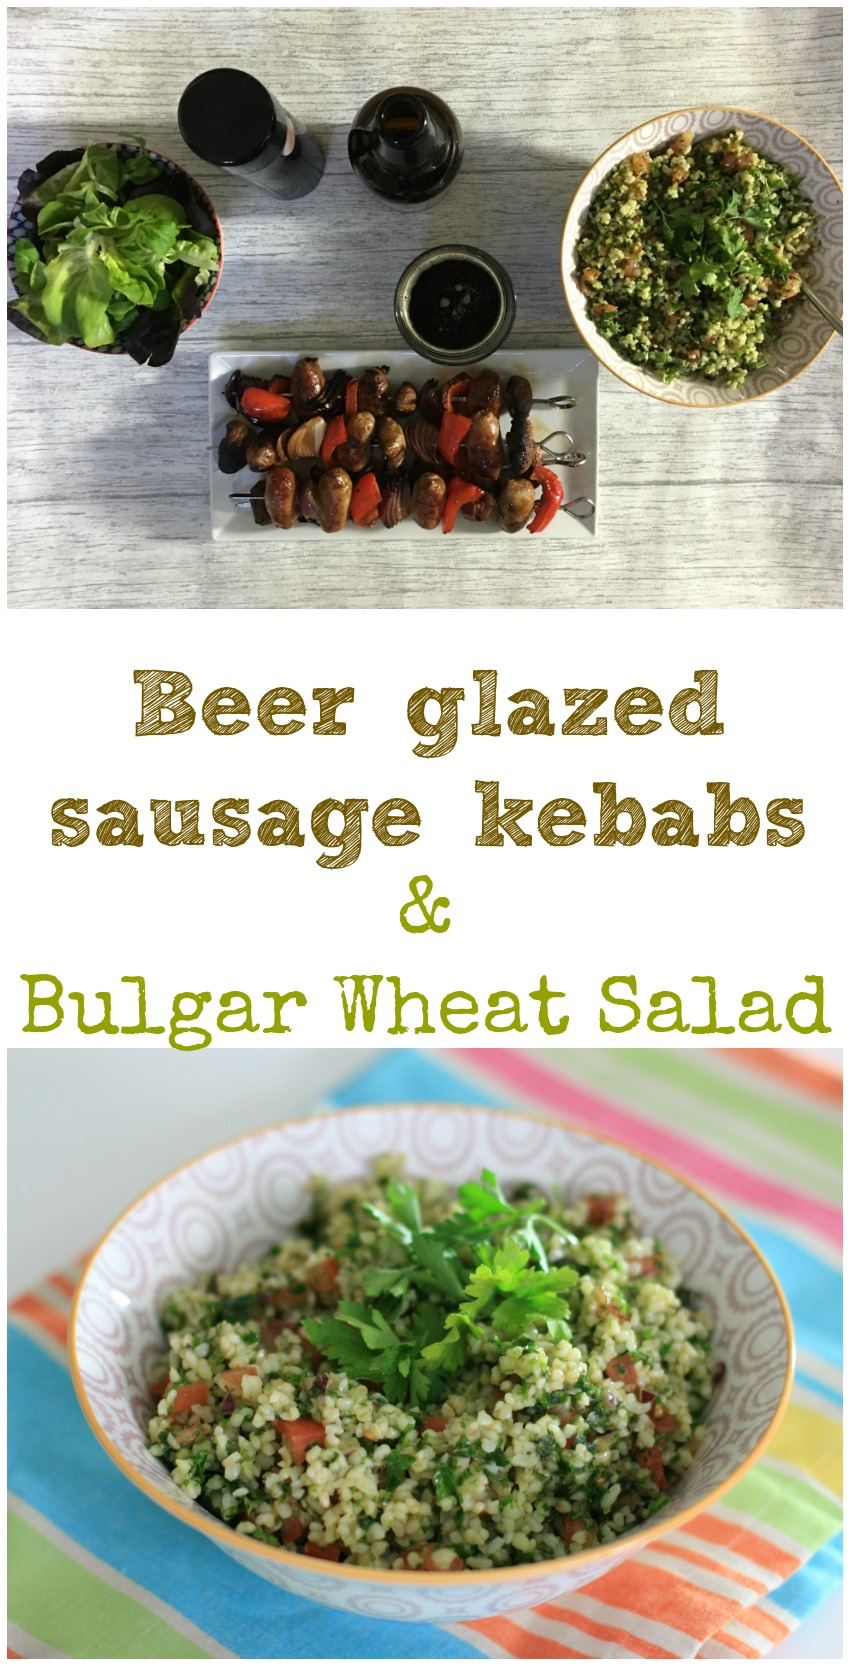 Fire up the barbecue, it's time for beer glazed sausage kebabs and a delicious bulgar wheat salad cherishedbyme.com